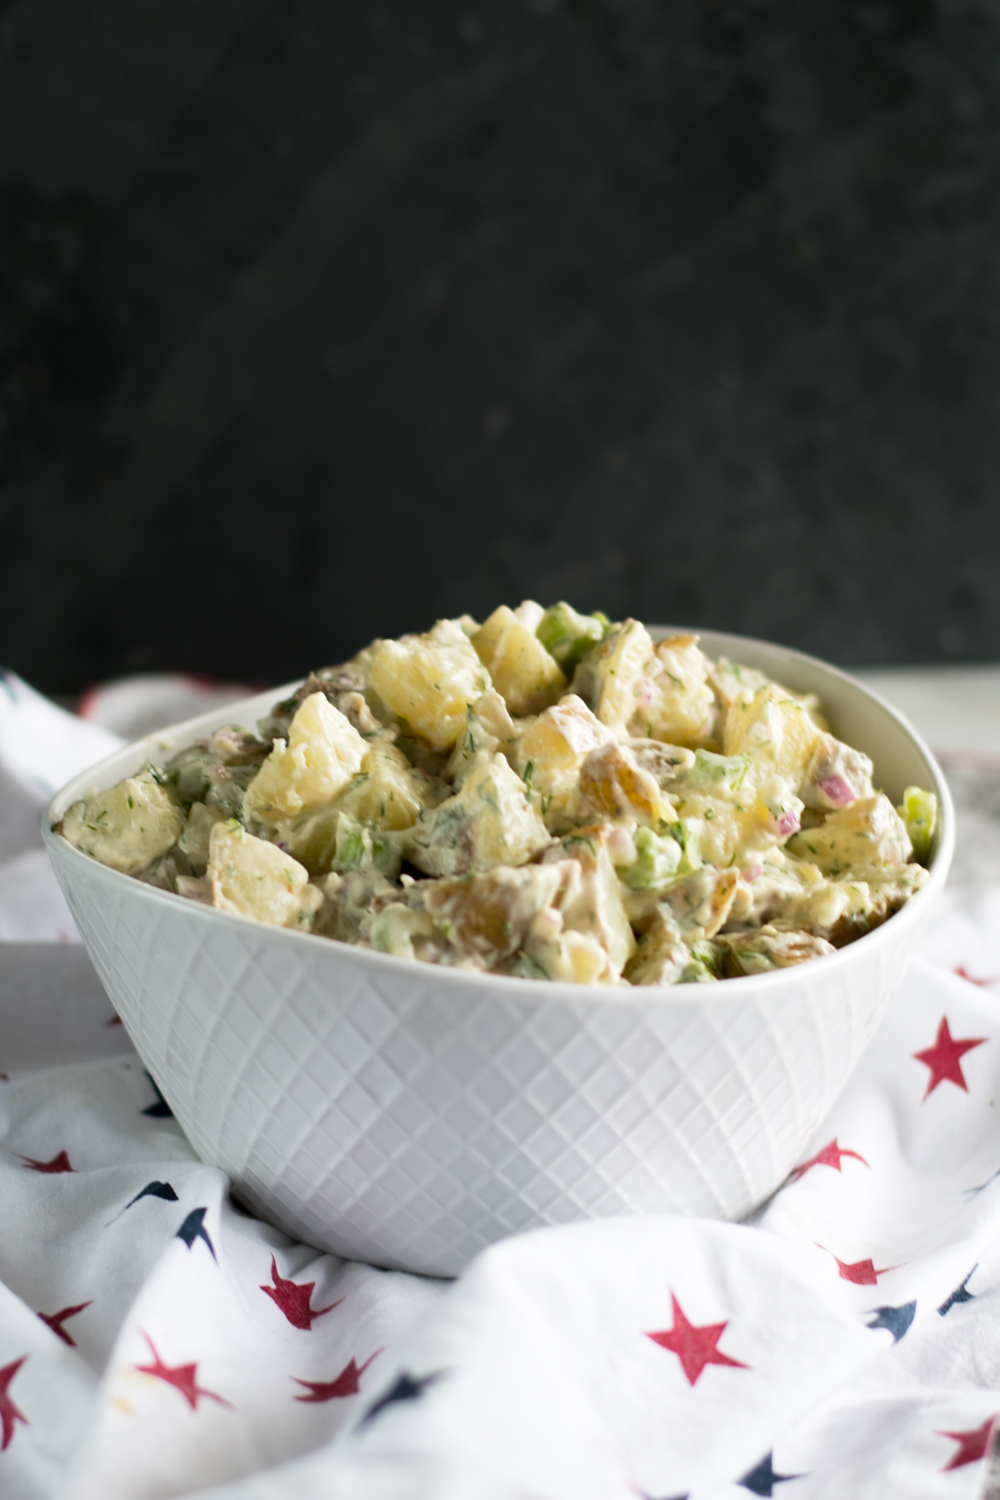 Vegan Dill Potato Salad is perfect for Summer BBQs and picnics! #vegan #summer #BBQ #sides #recipe #potato #salad